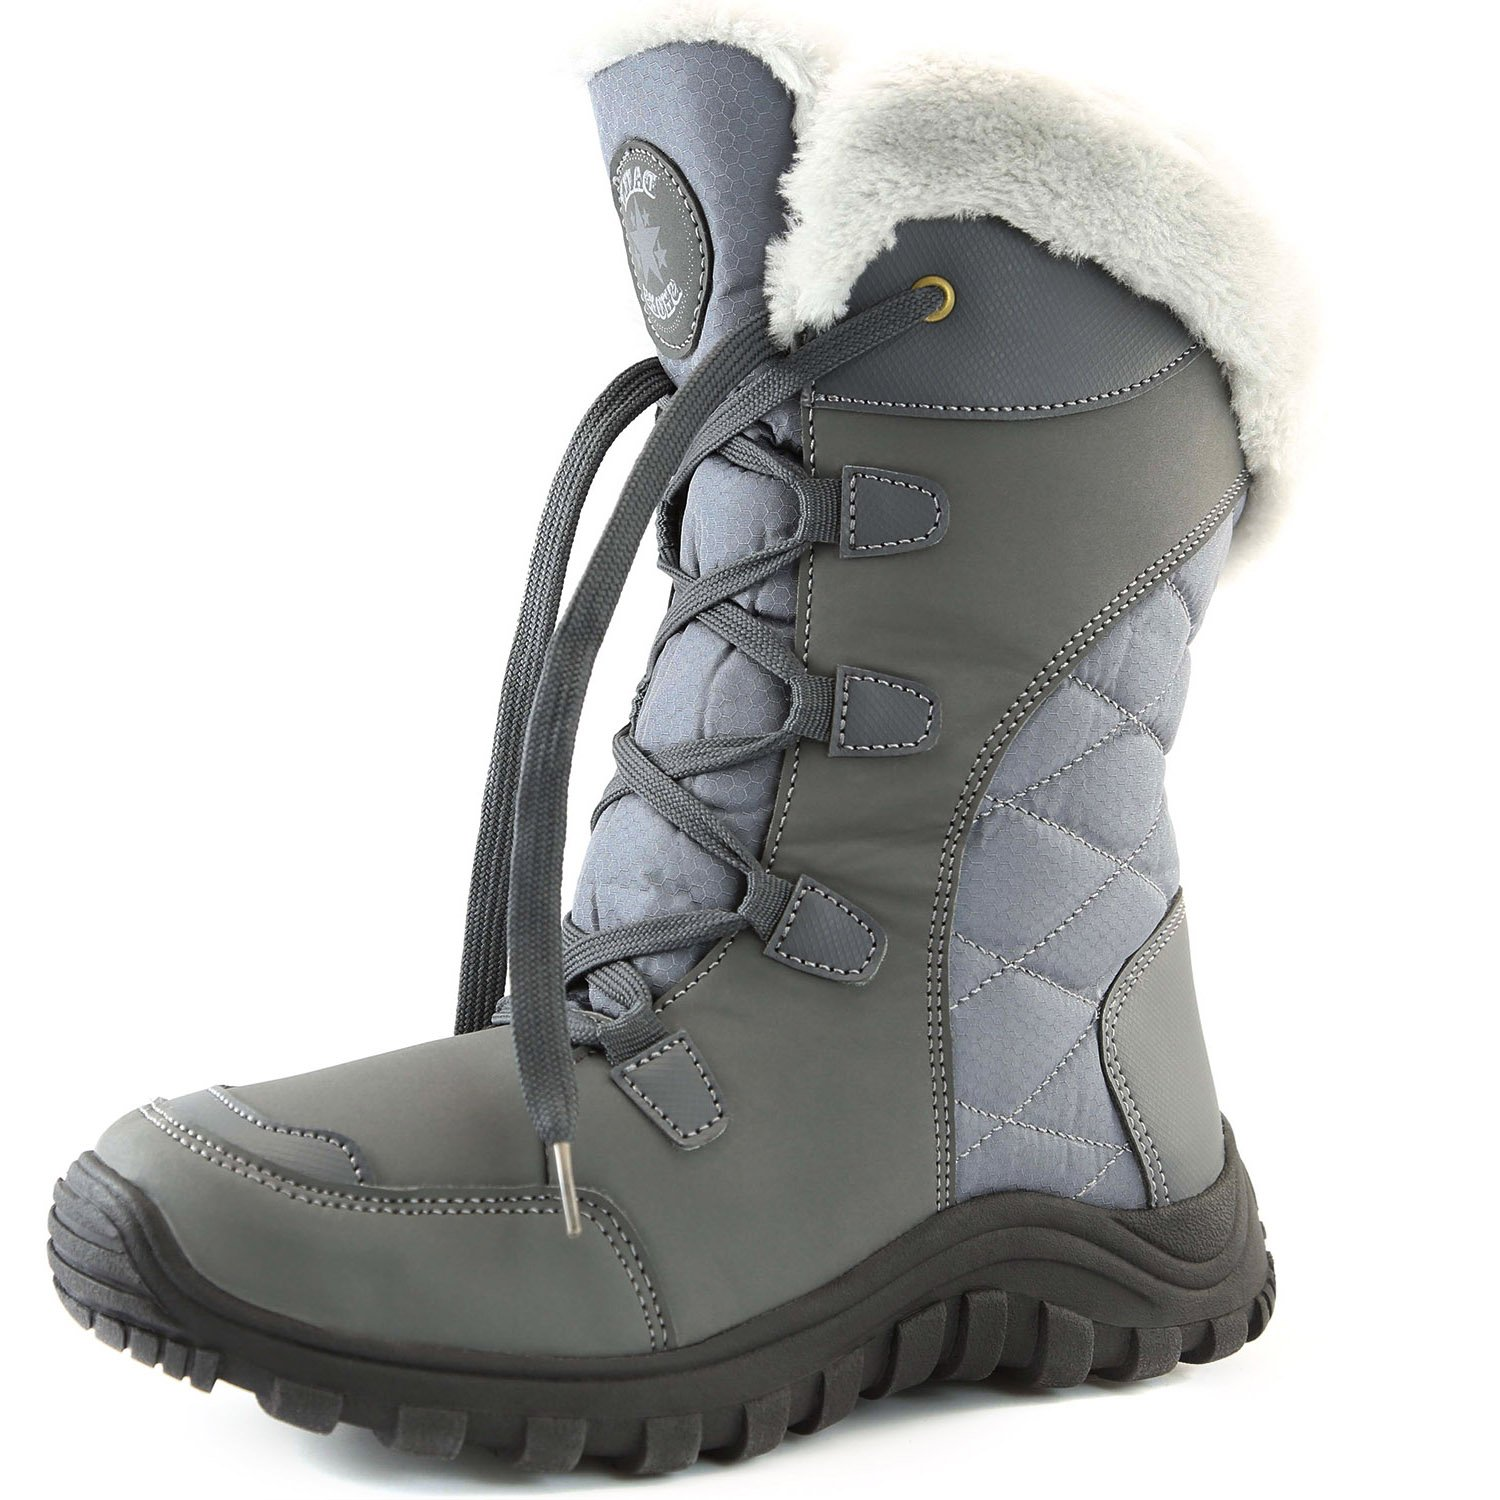 Top 10 Comfy Snow Boots For Women